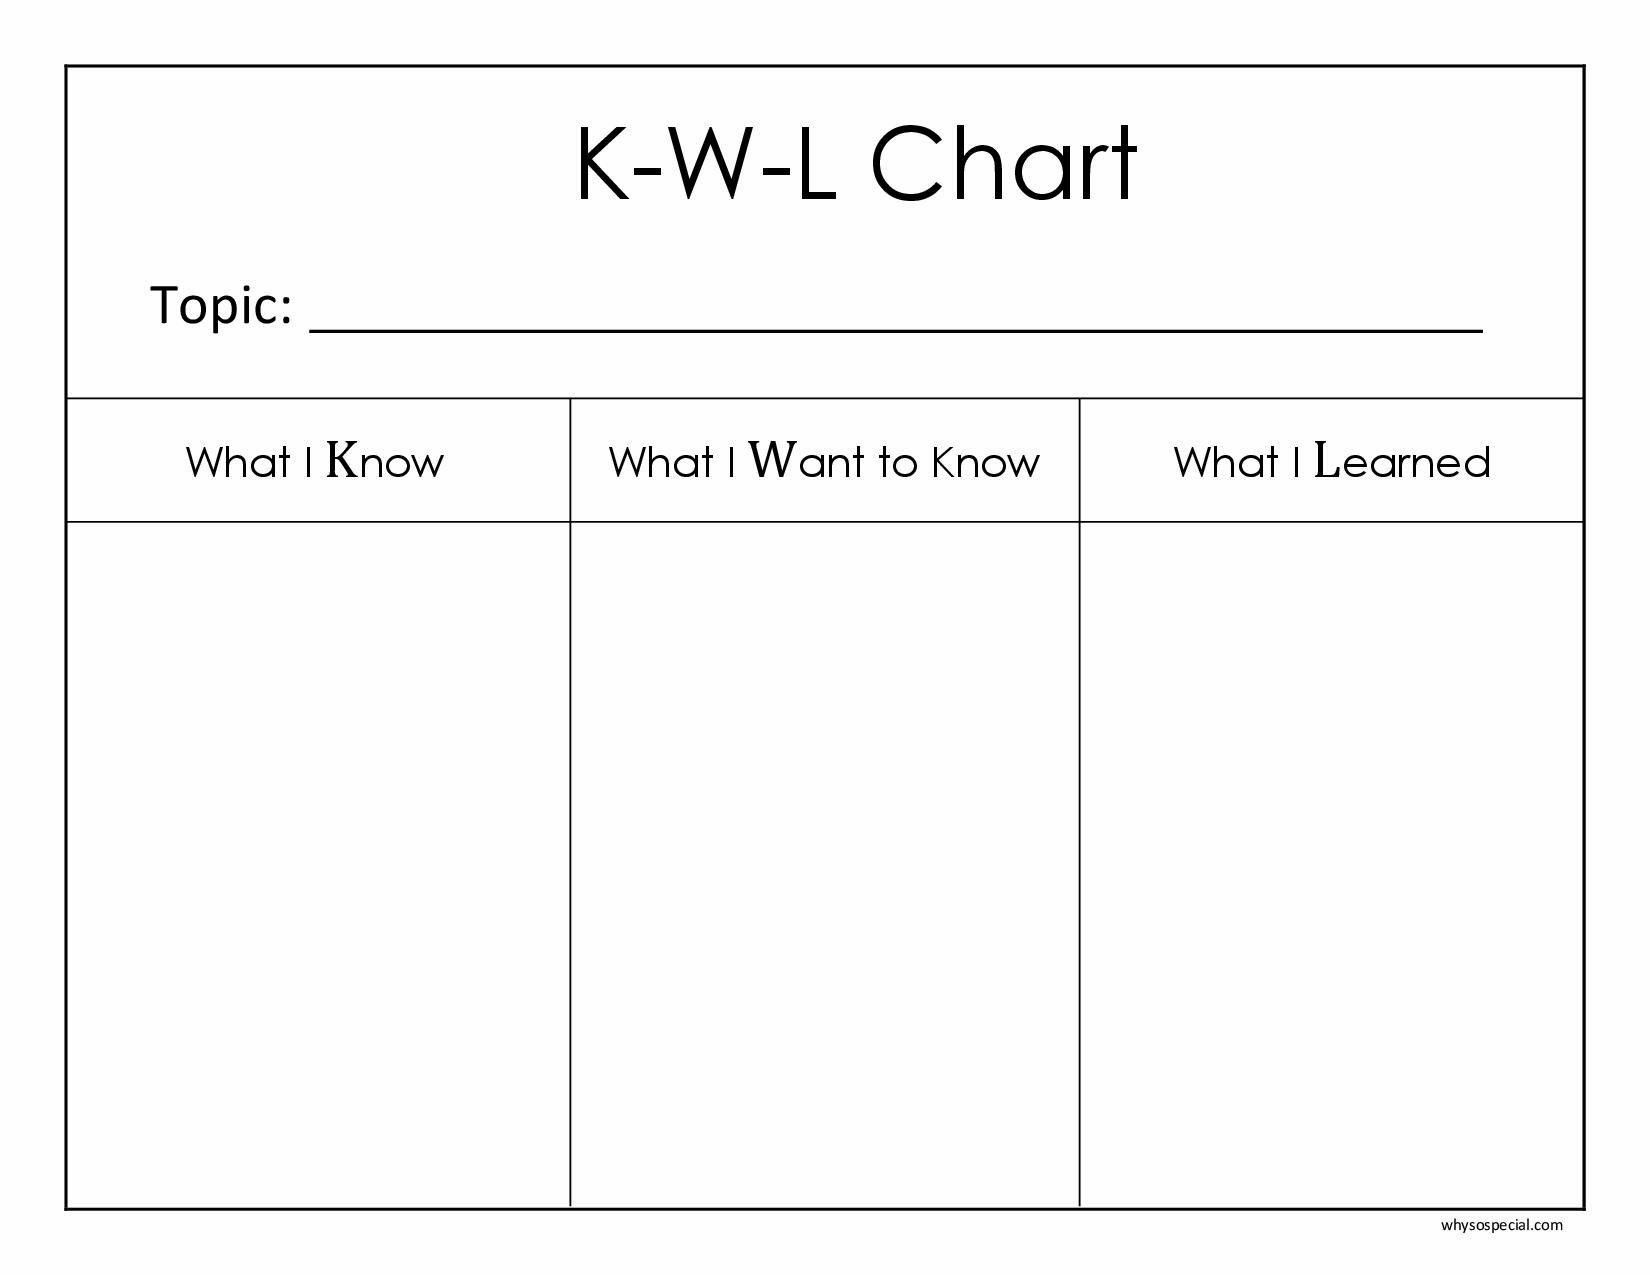 Free Handout The Main Objective Of The K W L Chart Is To